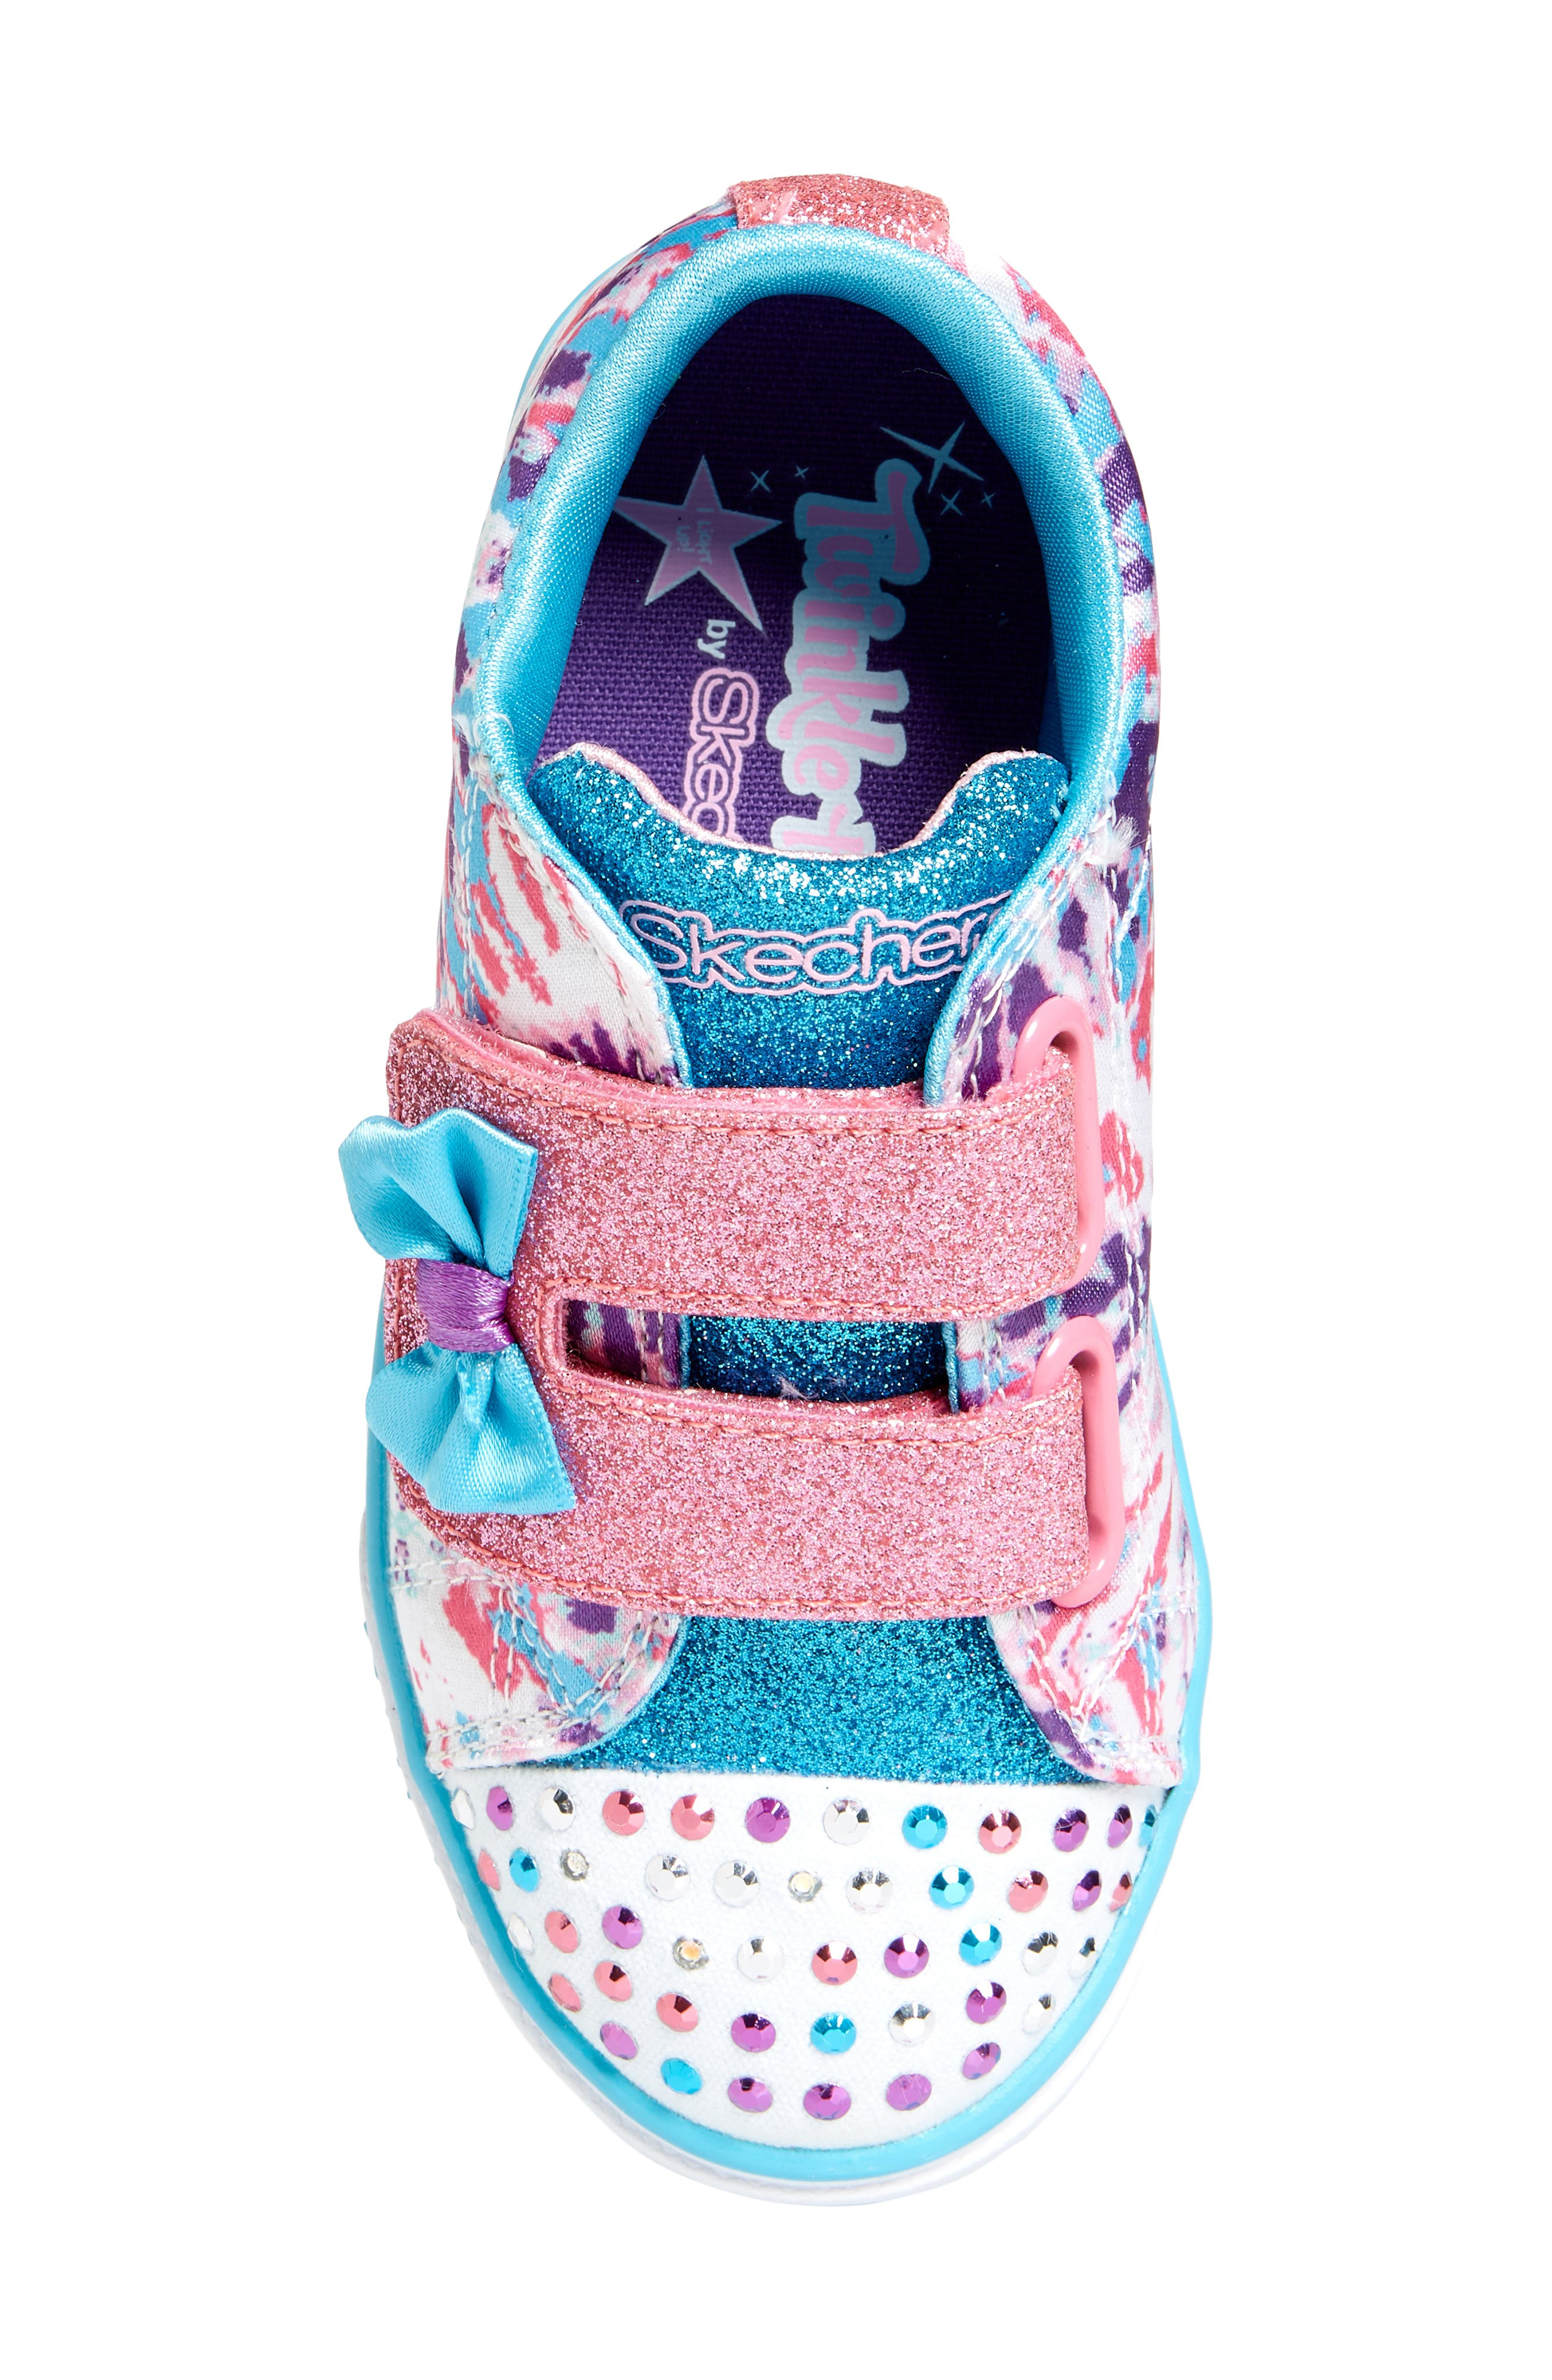 SKECHERS,                             Sparkle Glitz Lil Dazzle Sneaker,                             Alternate thumbnail 5, color,                             199